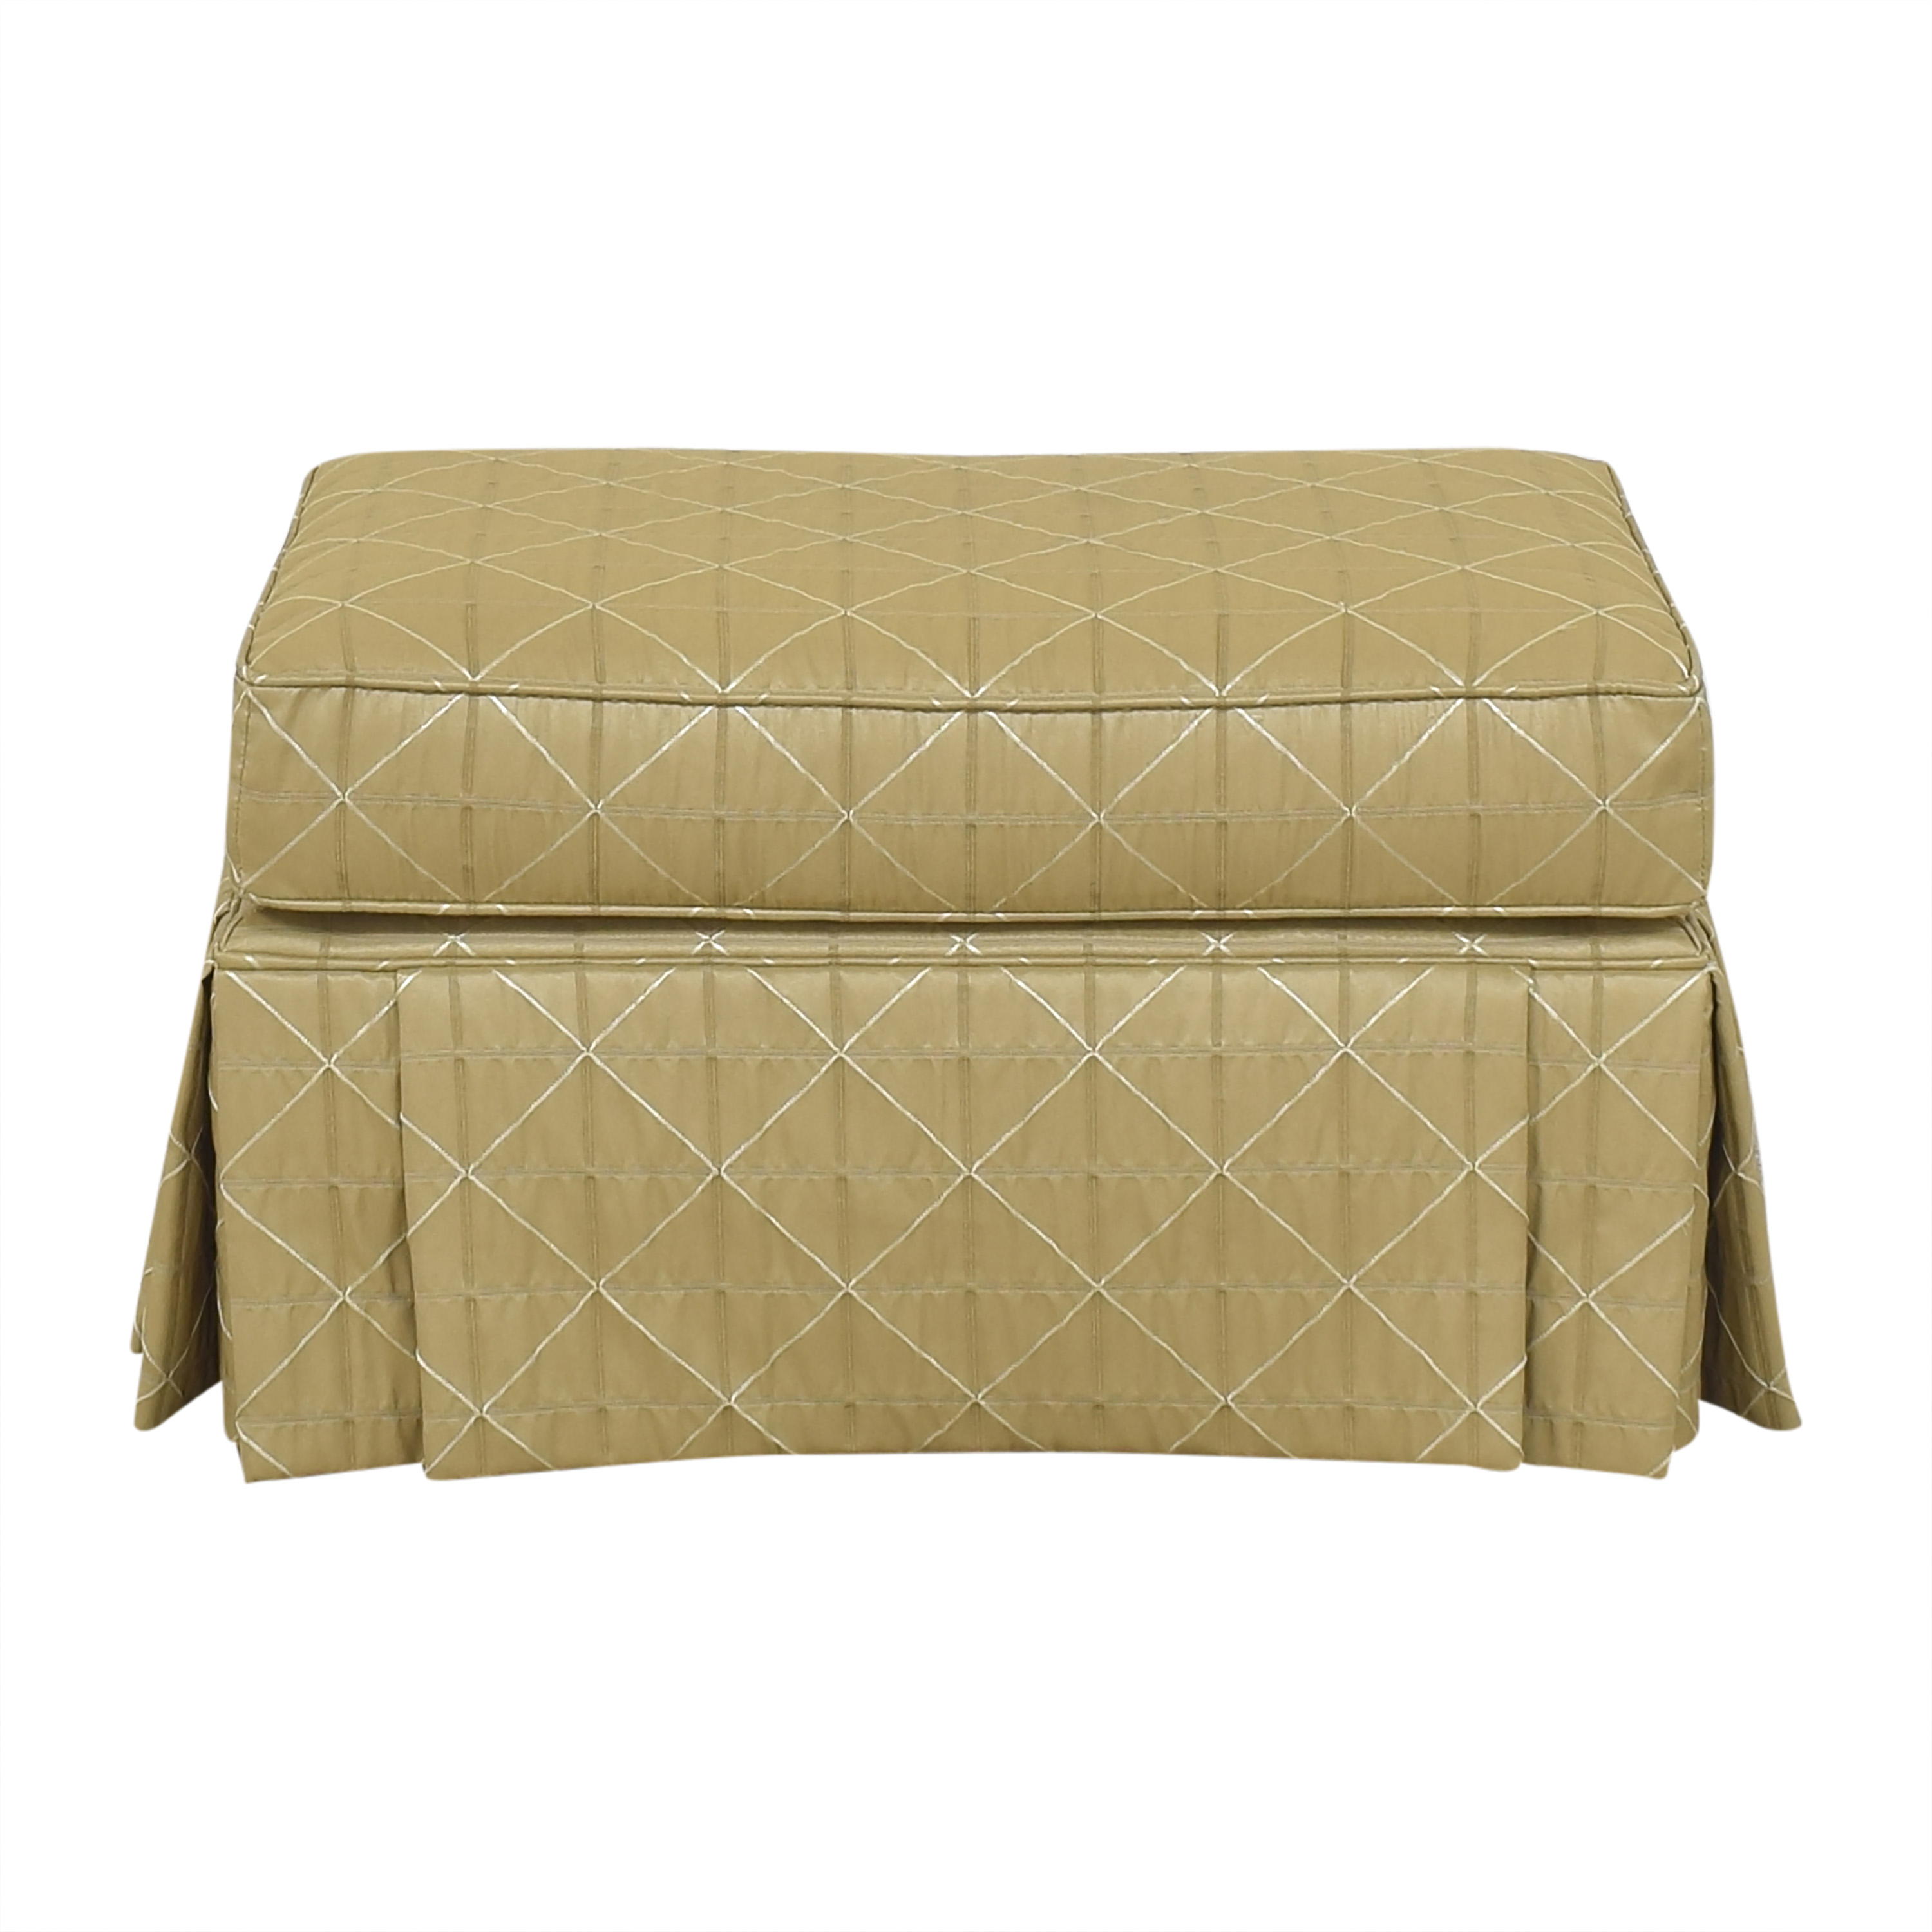 shop CR Laine Skirted Ottoman CR Laine Ottomans